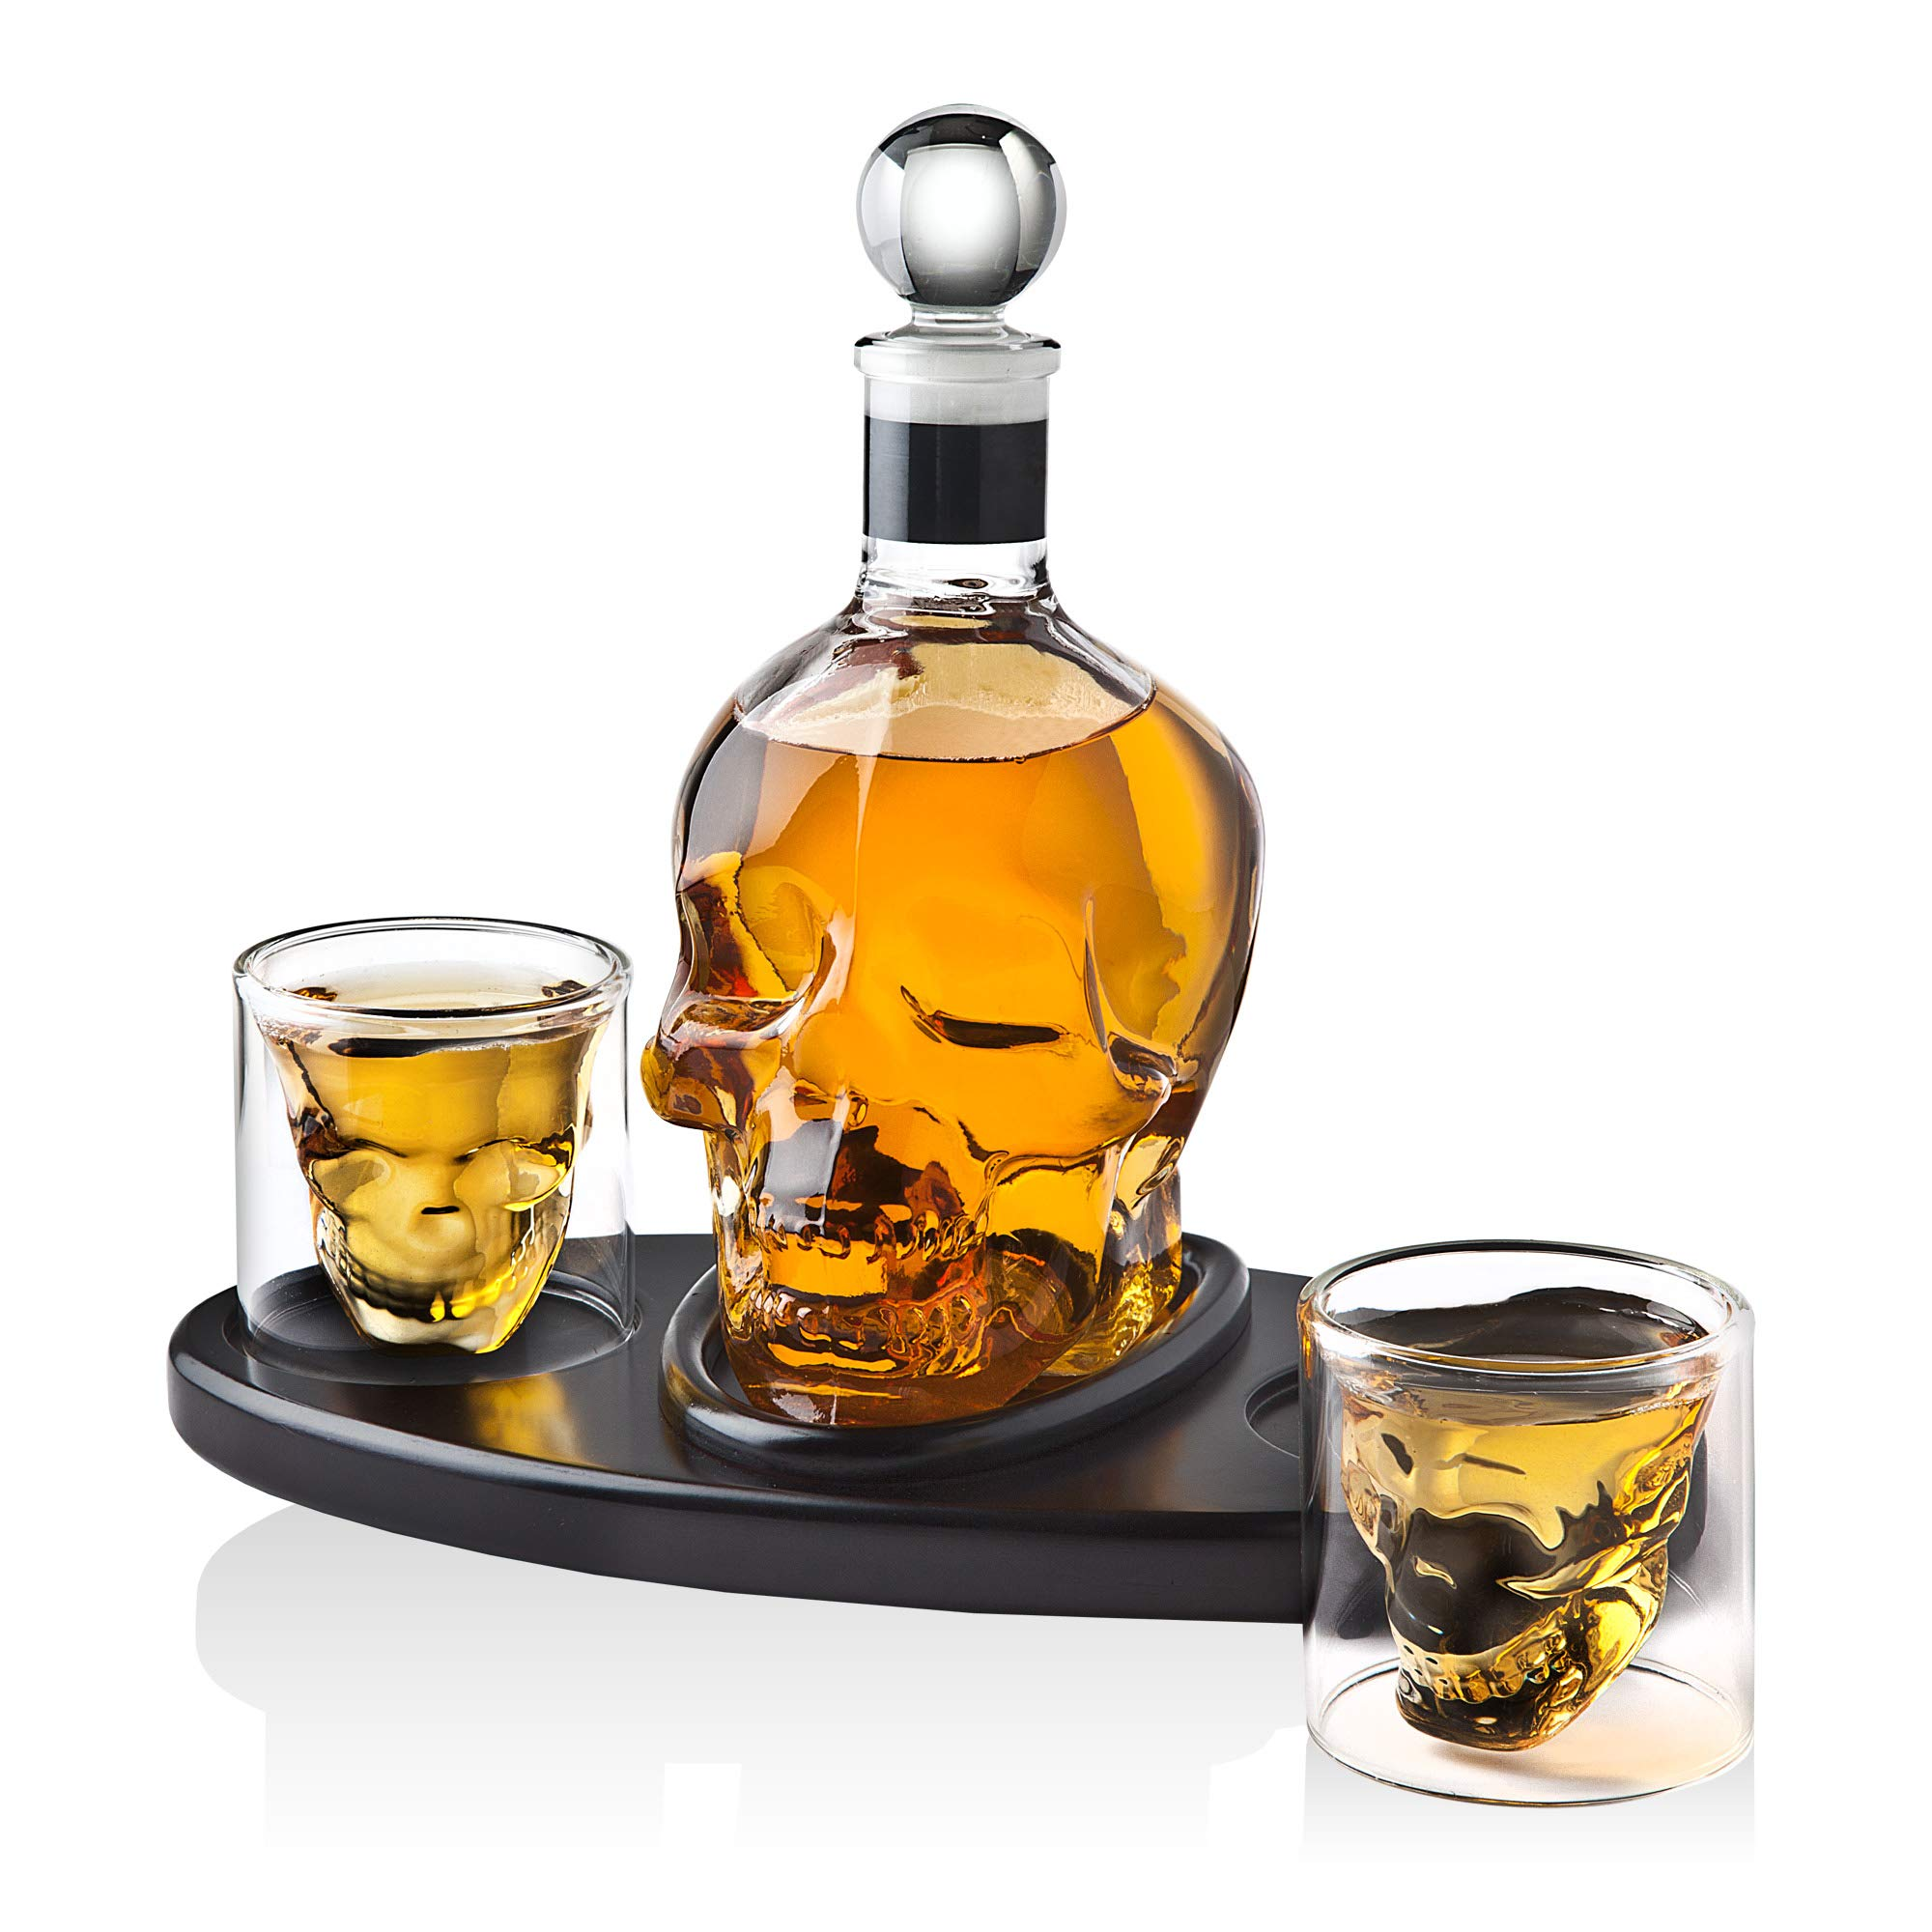 Whiskey Decanter Skull Set with 2 Cocktail Shot Glasses - for Liquor, Scotch, Bourbon or Vodka - 850ml by Godinger